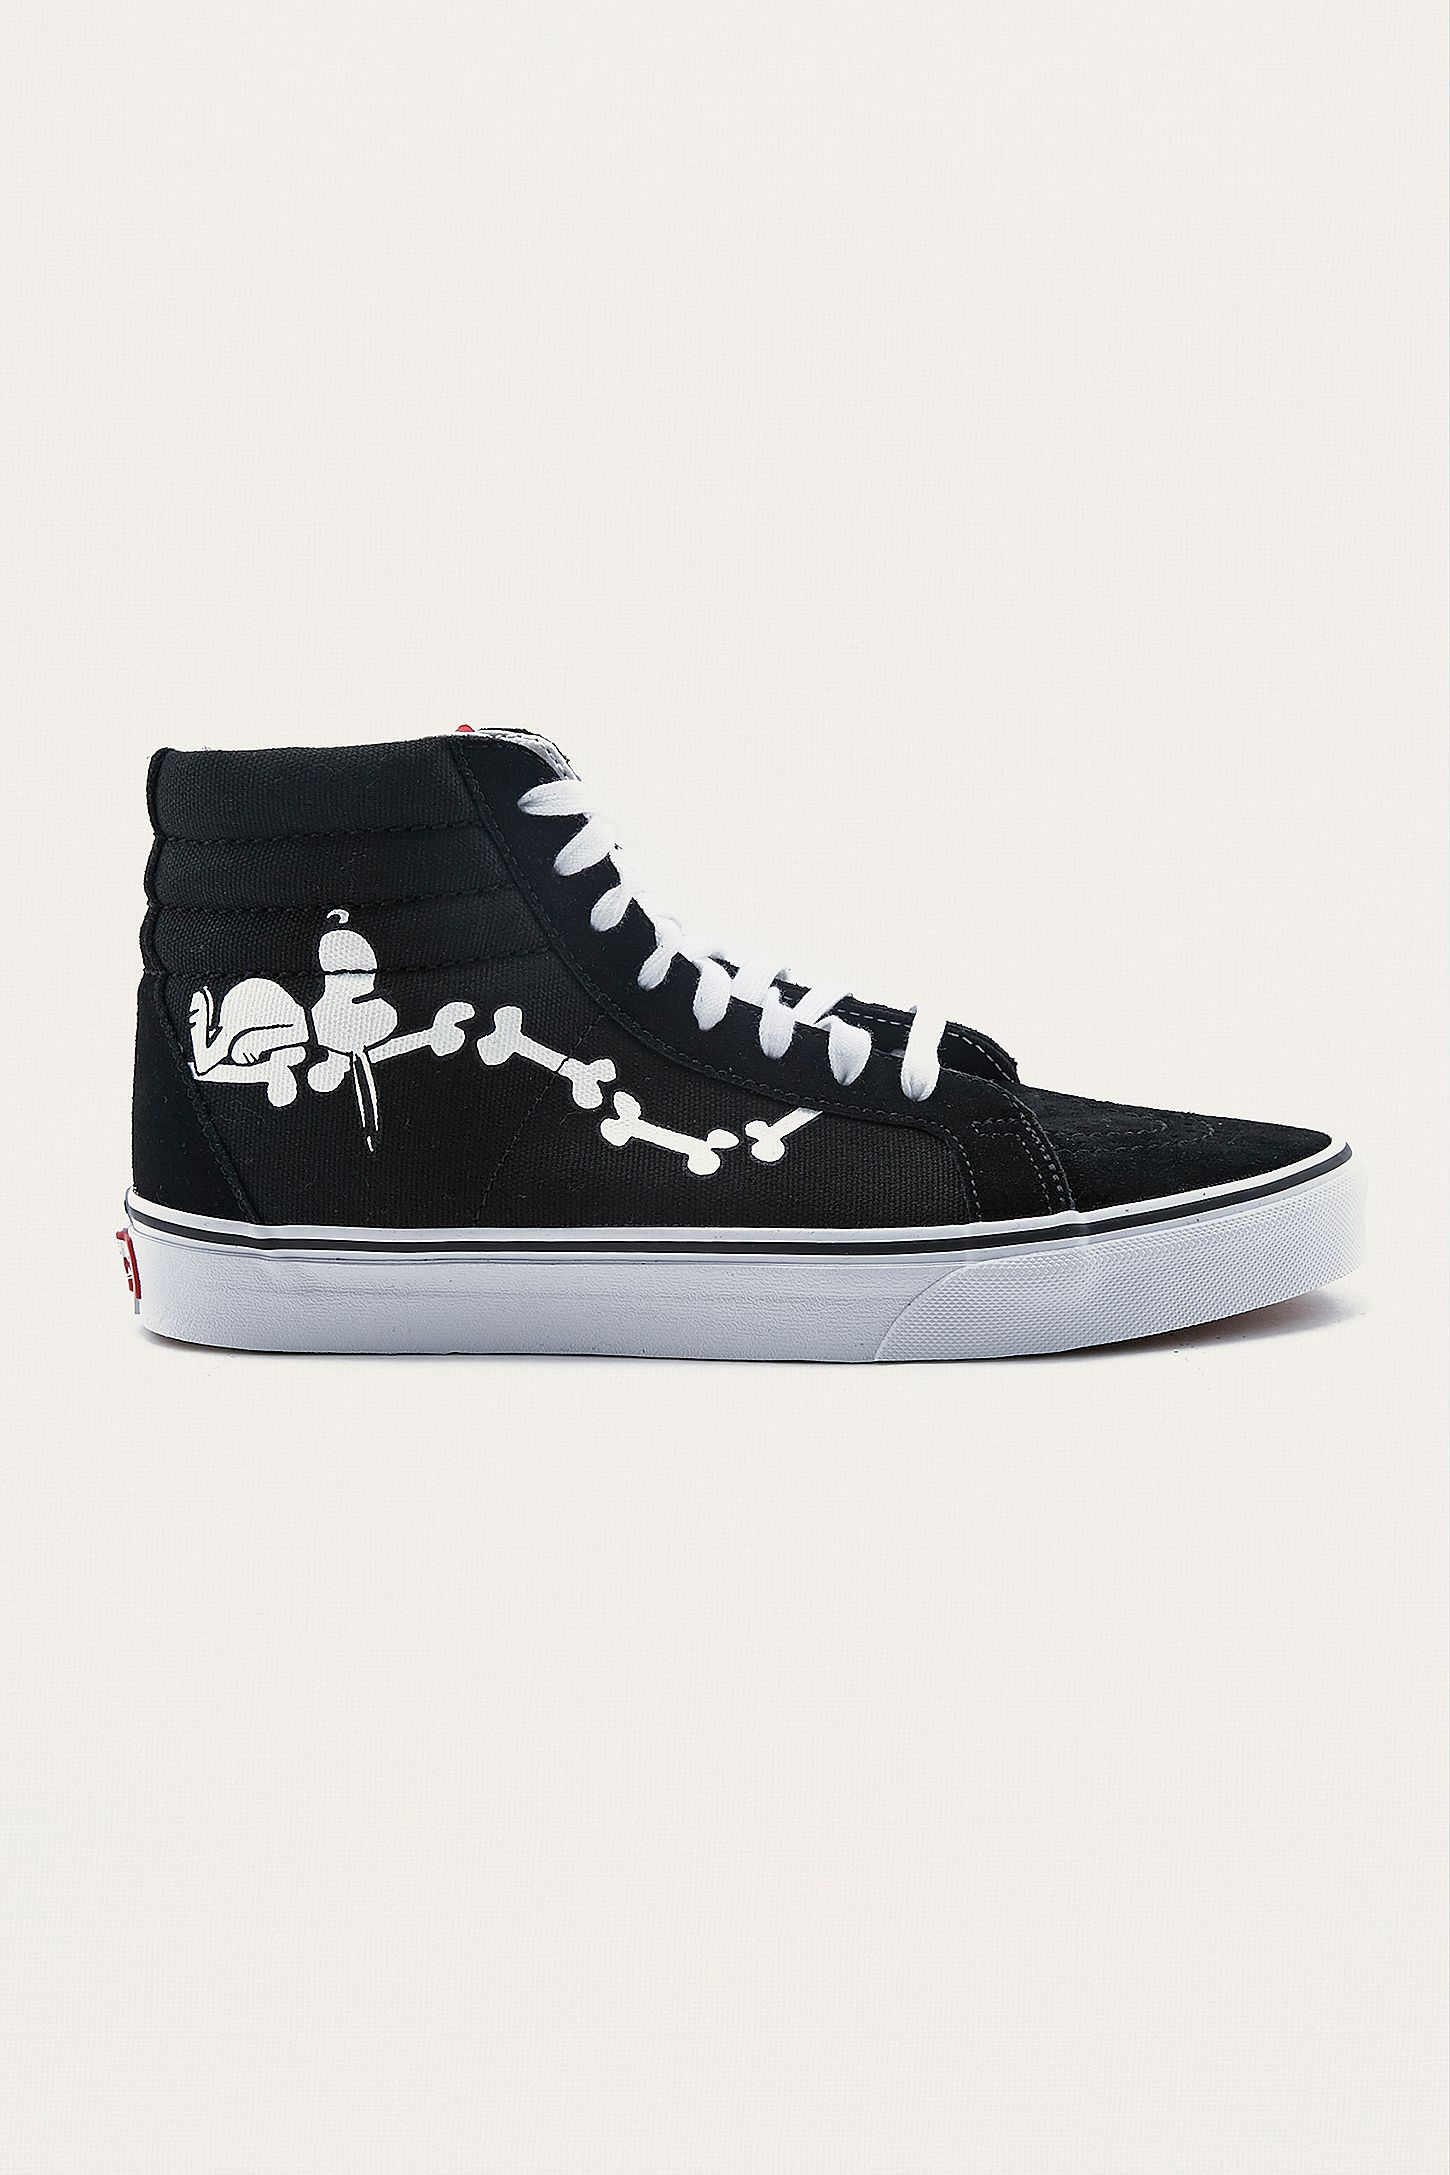 ff49b7a1e26dc2 Vans X Peanuts Sk8-Hi Reissue Trainers. Click on image to zoom. Hover to  zoom. Double Tap to Zoom